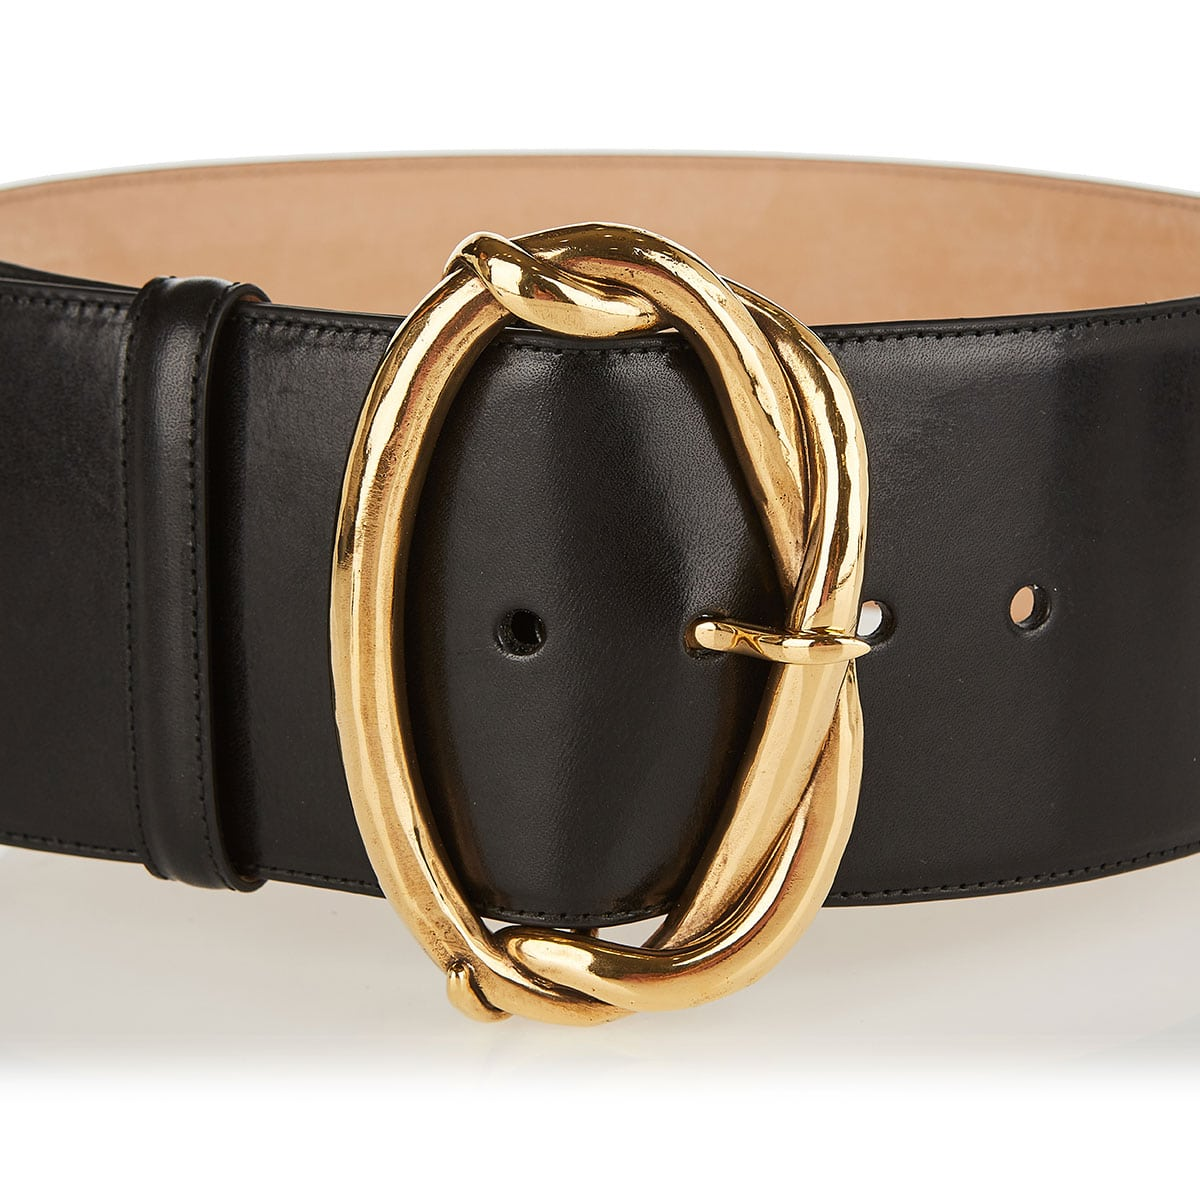 Wide belt with jeweled buckle